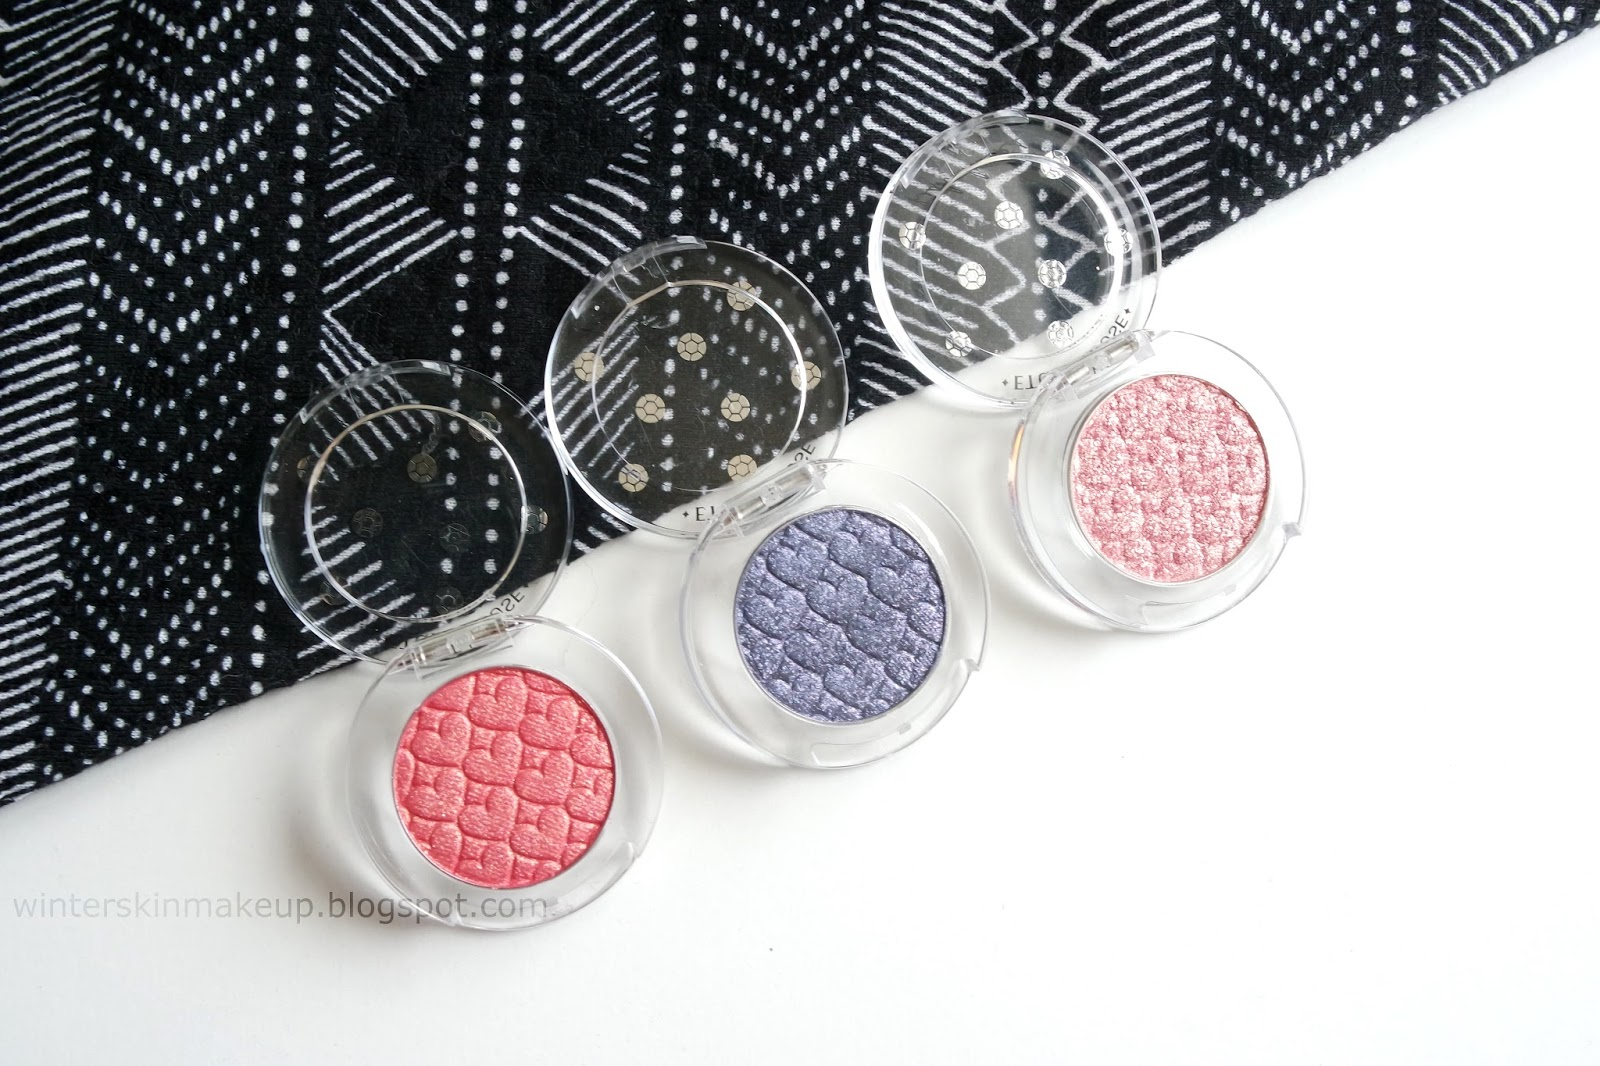 Etude House Look At My Eyes Eyeshadow